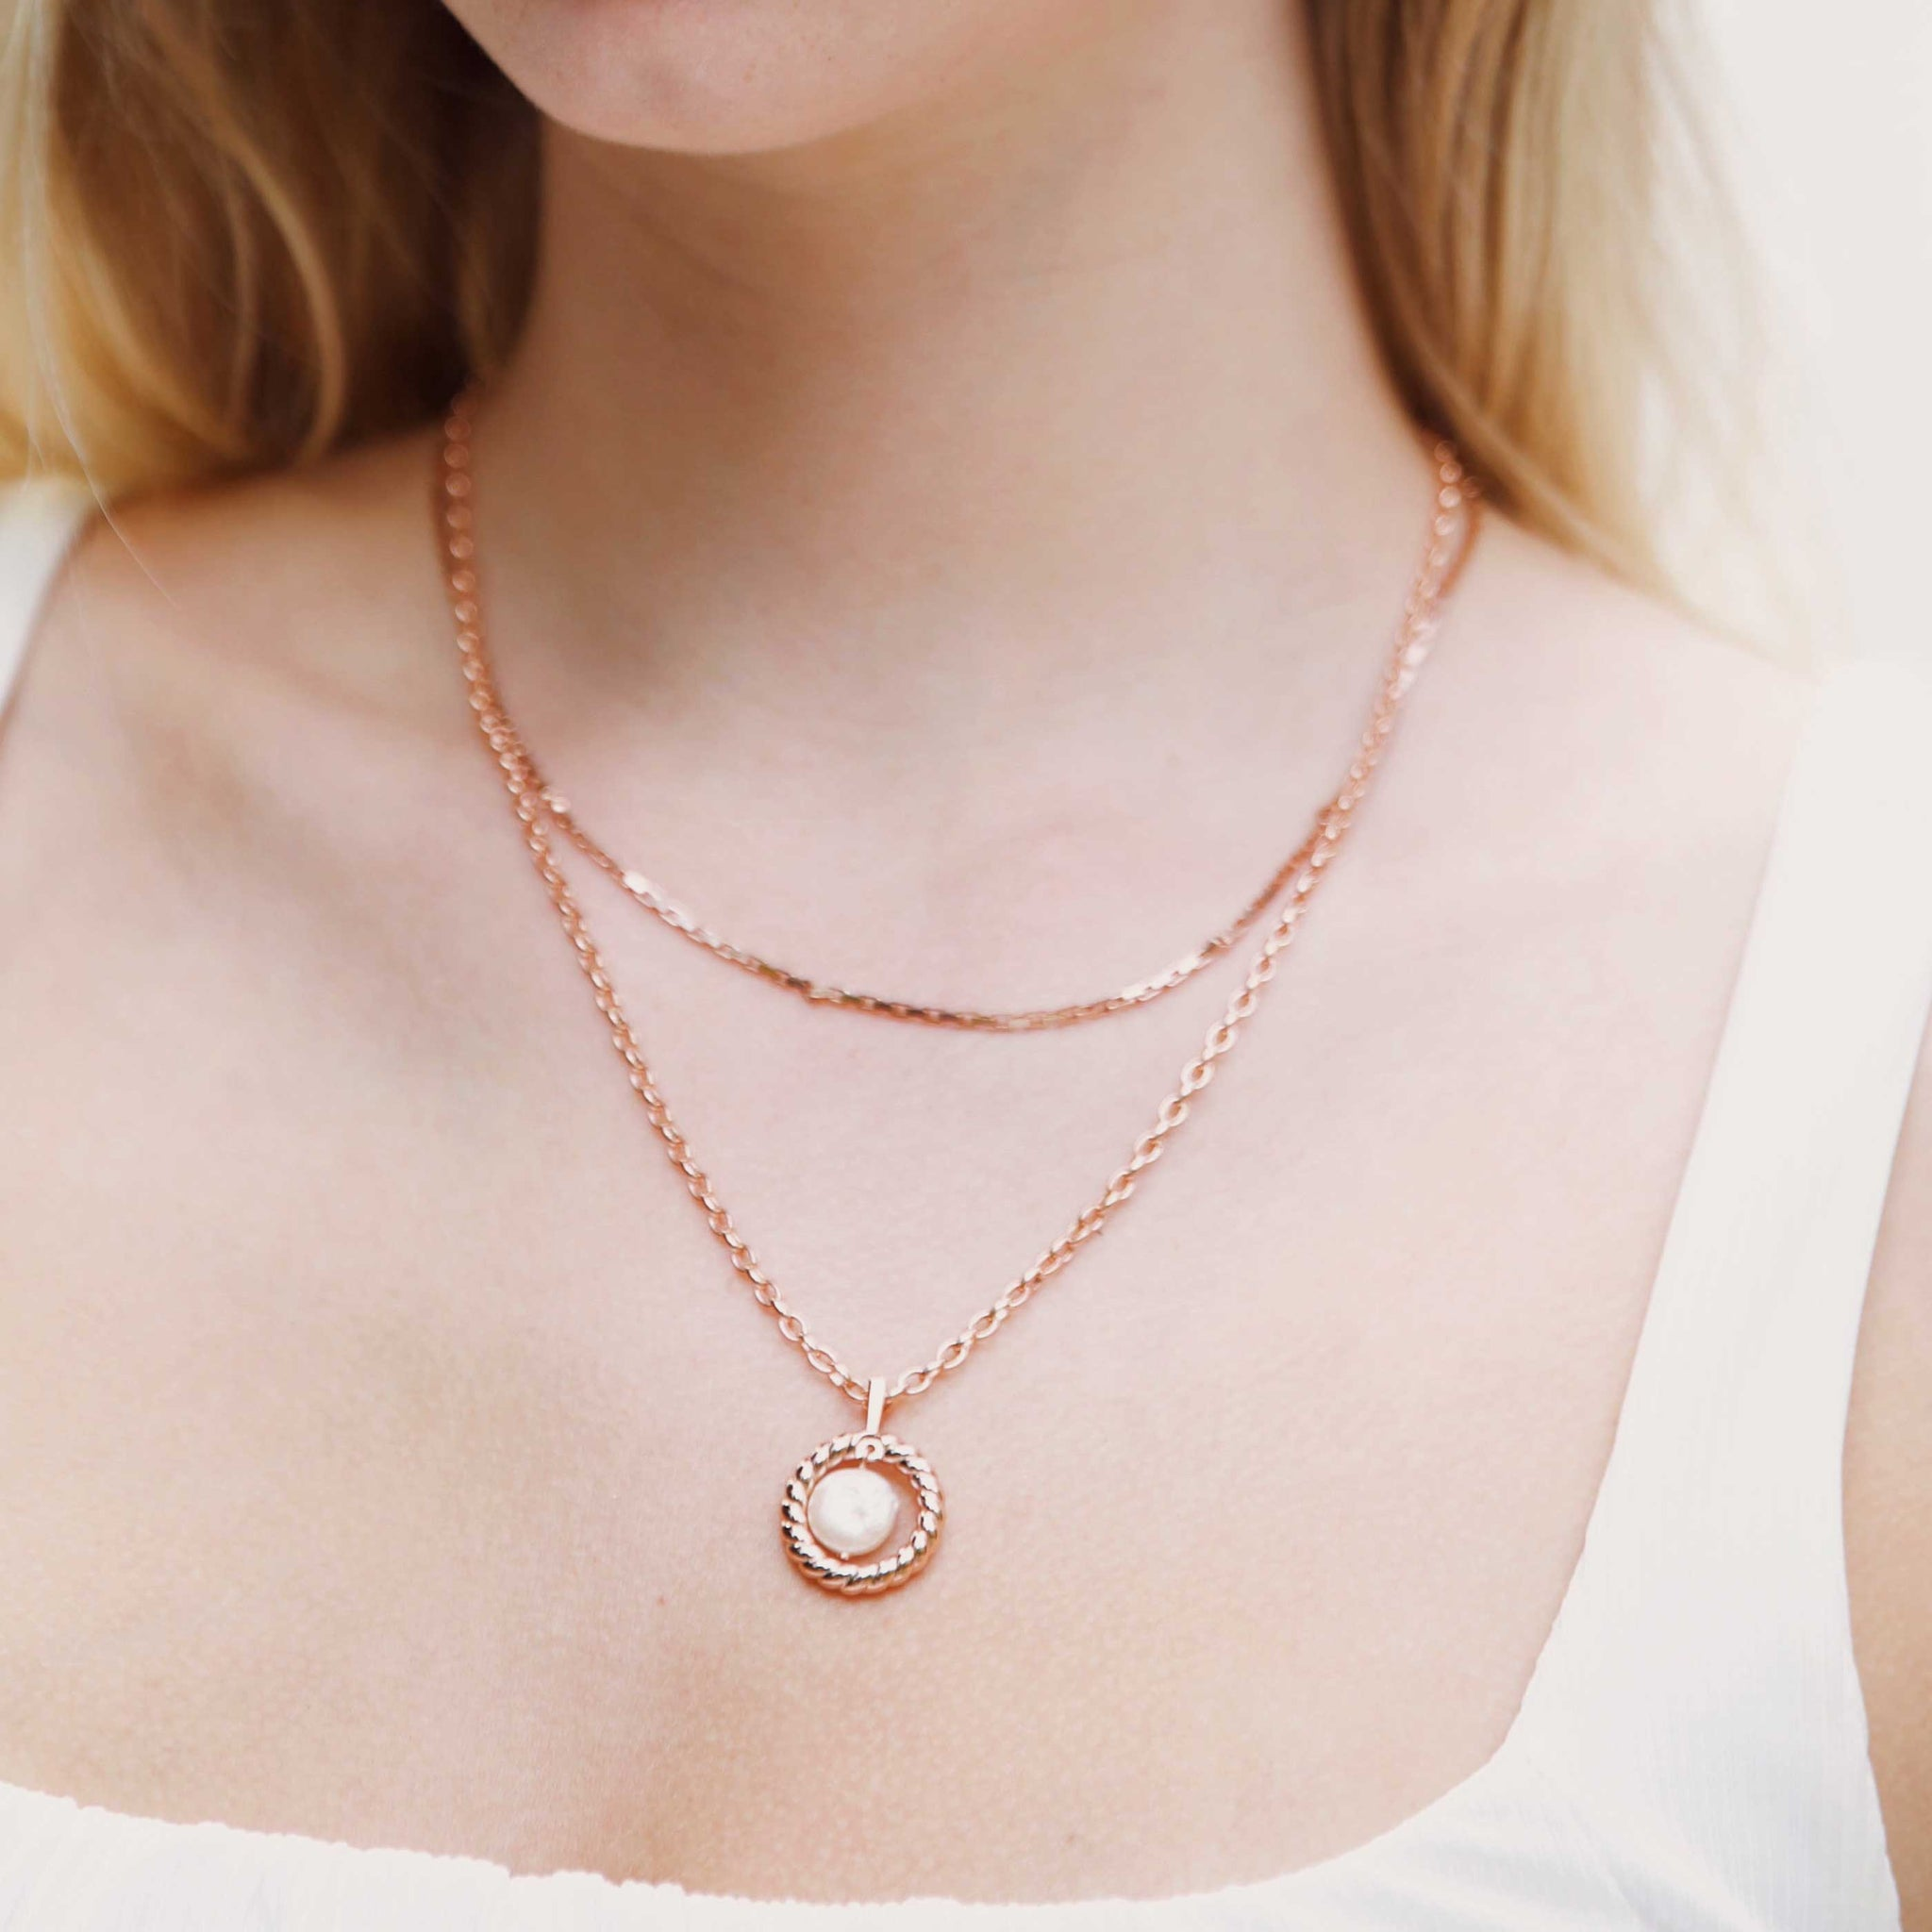 Rectangular Link Necklace Chain in Rose Gold worn with pearl pendant necklace